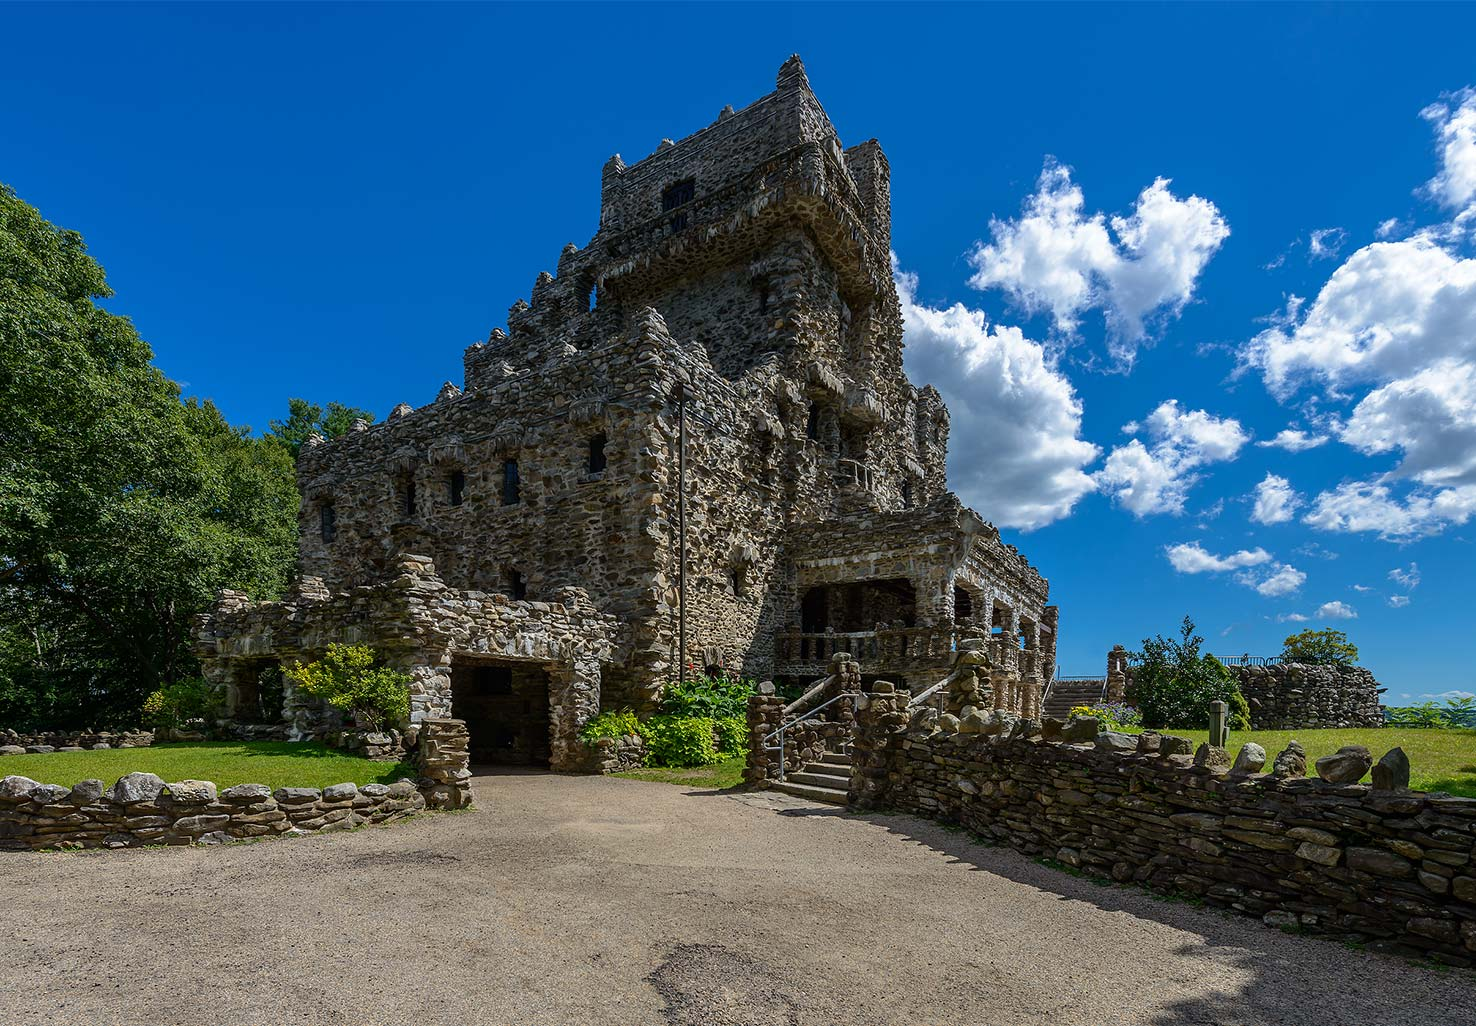 Gillette Castle with a blue sky